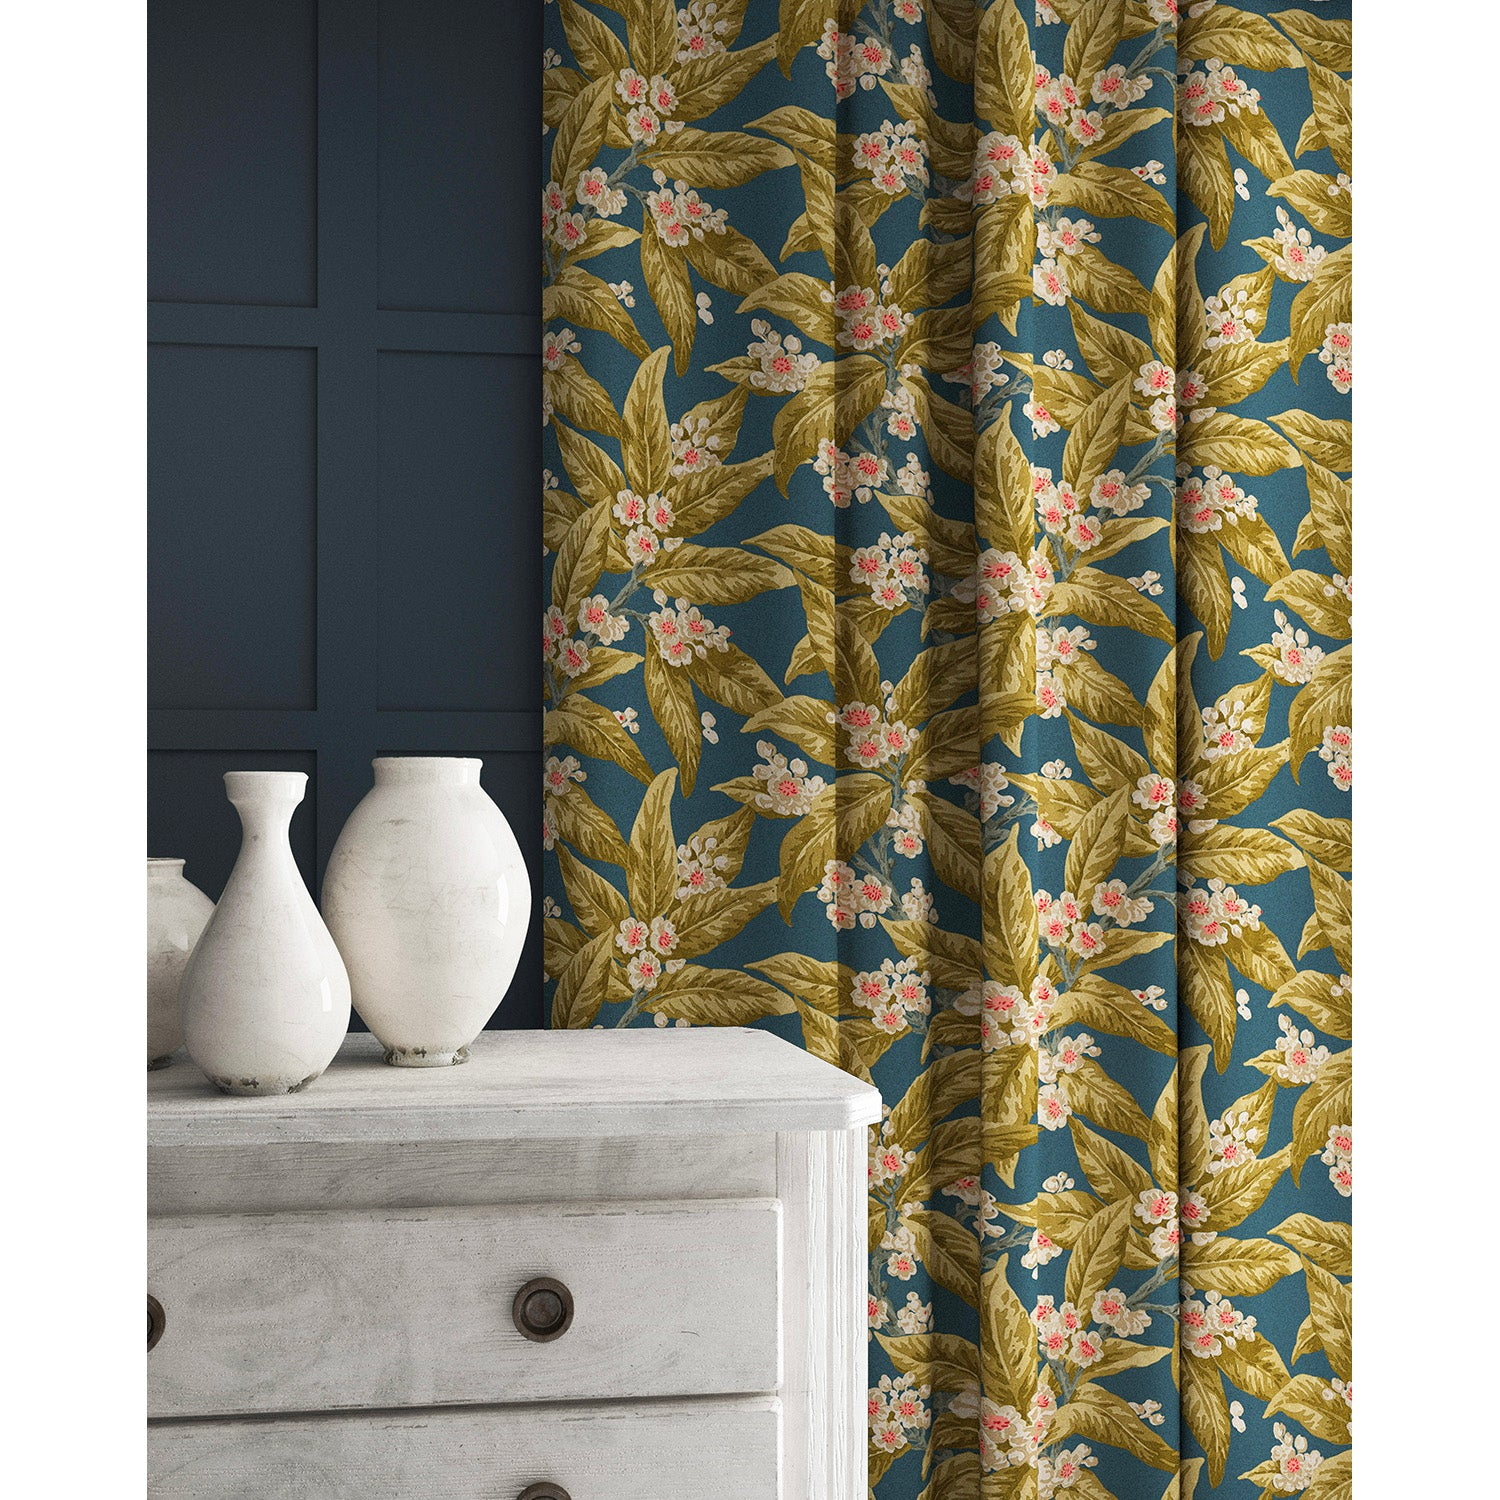 Curtains in a blue and ochre coloured velvet fabric with a leaf and blossom design and stain resistant finish